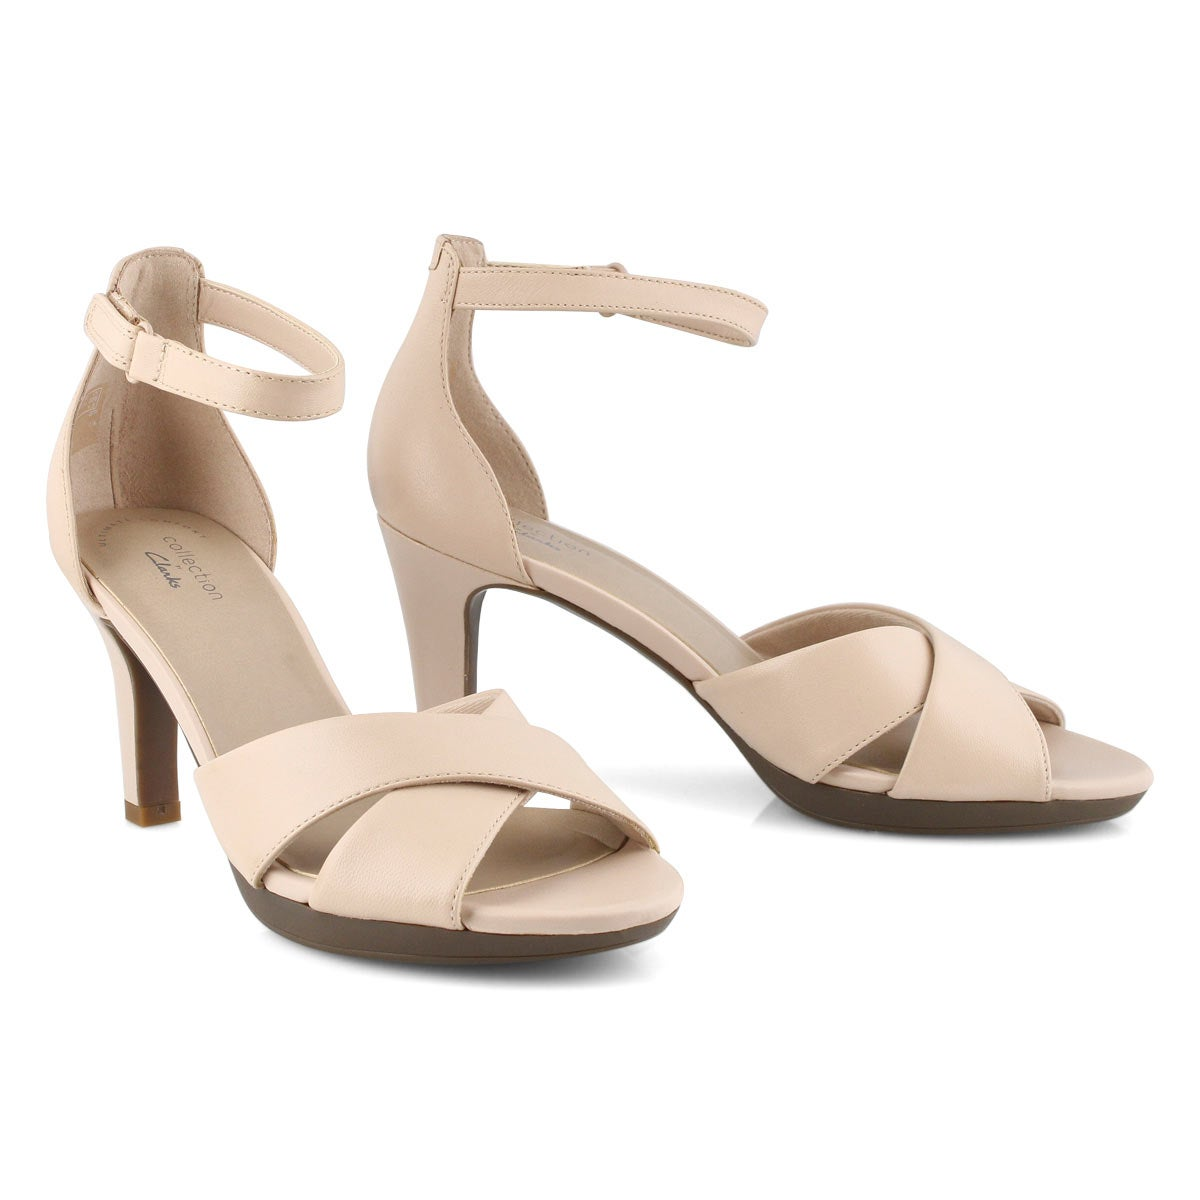 Lds Adriel Cove blush dress heels